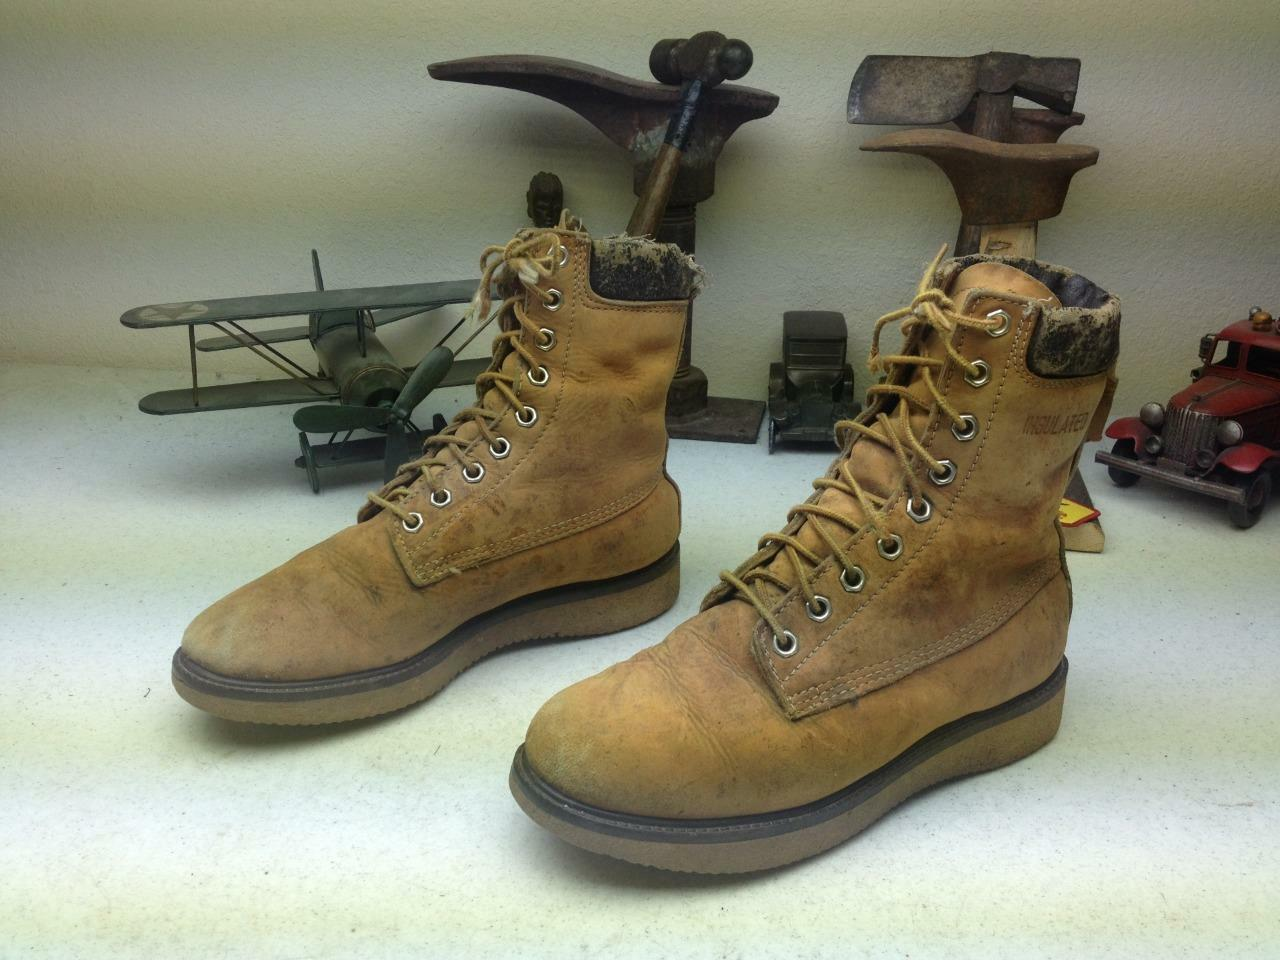 VINTAGE USA DISTRESSED AMBER LEATHER LACE LACE LACE UP TRAIL HIKE PACKER CHORE BOOTS 8 D becf24